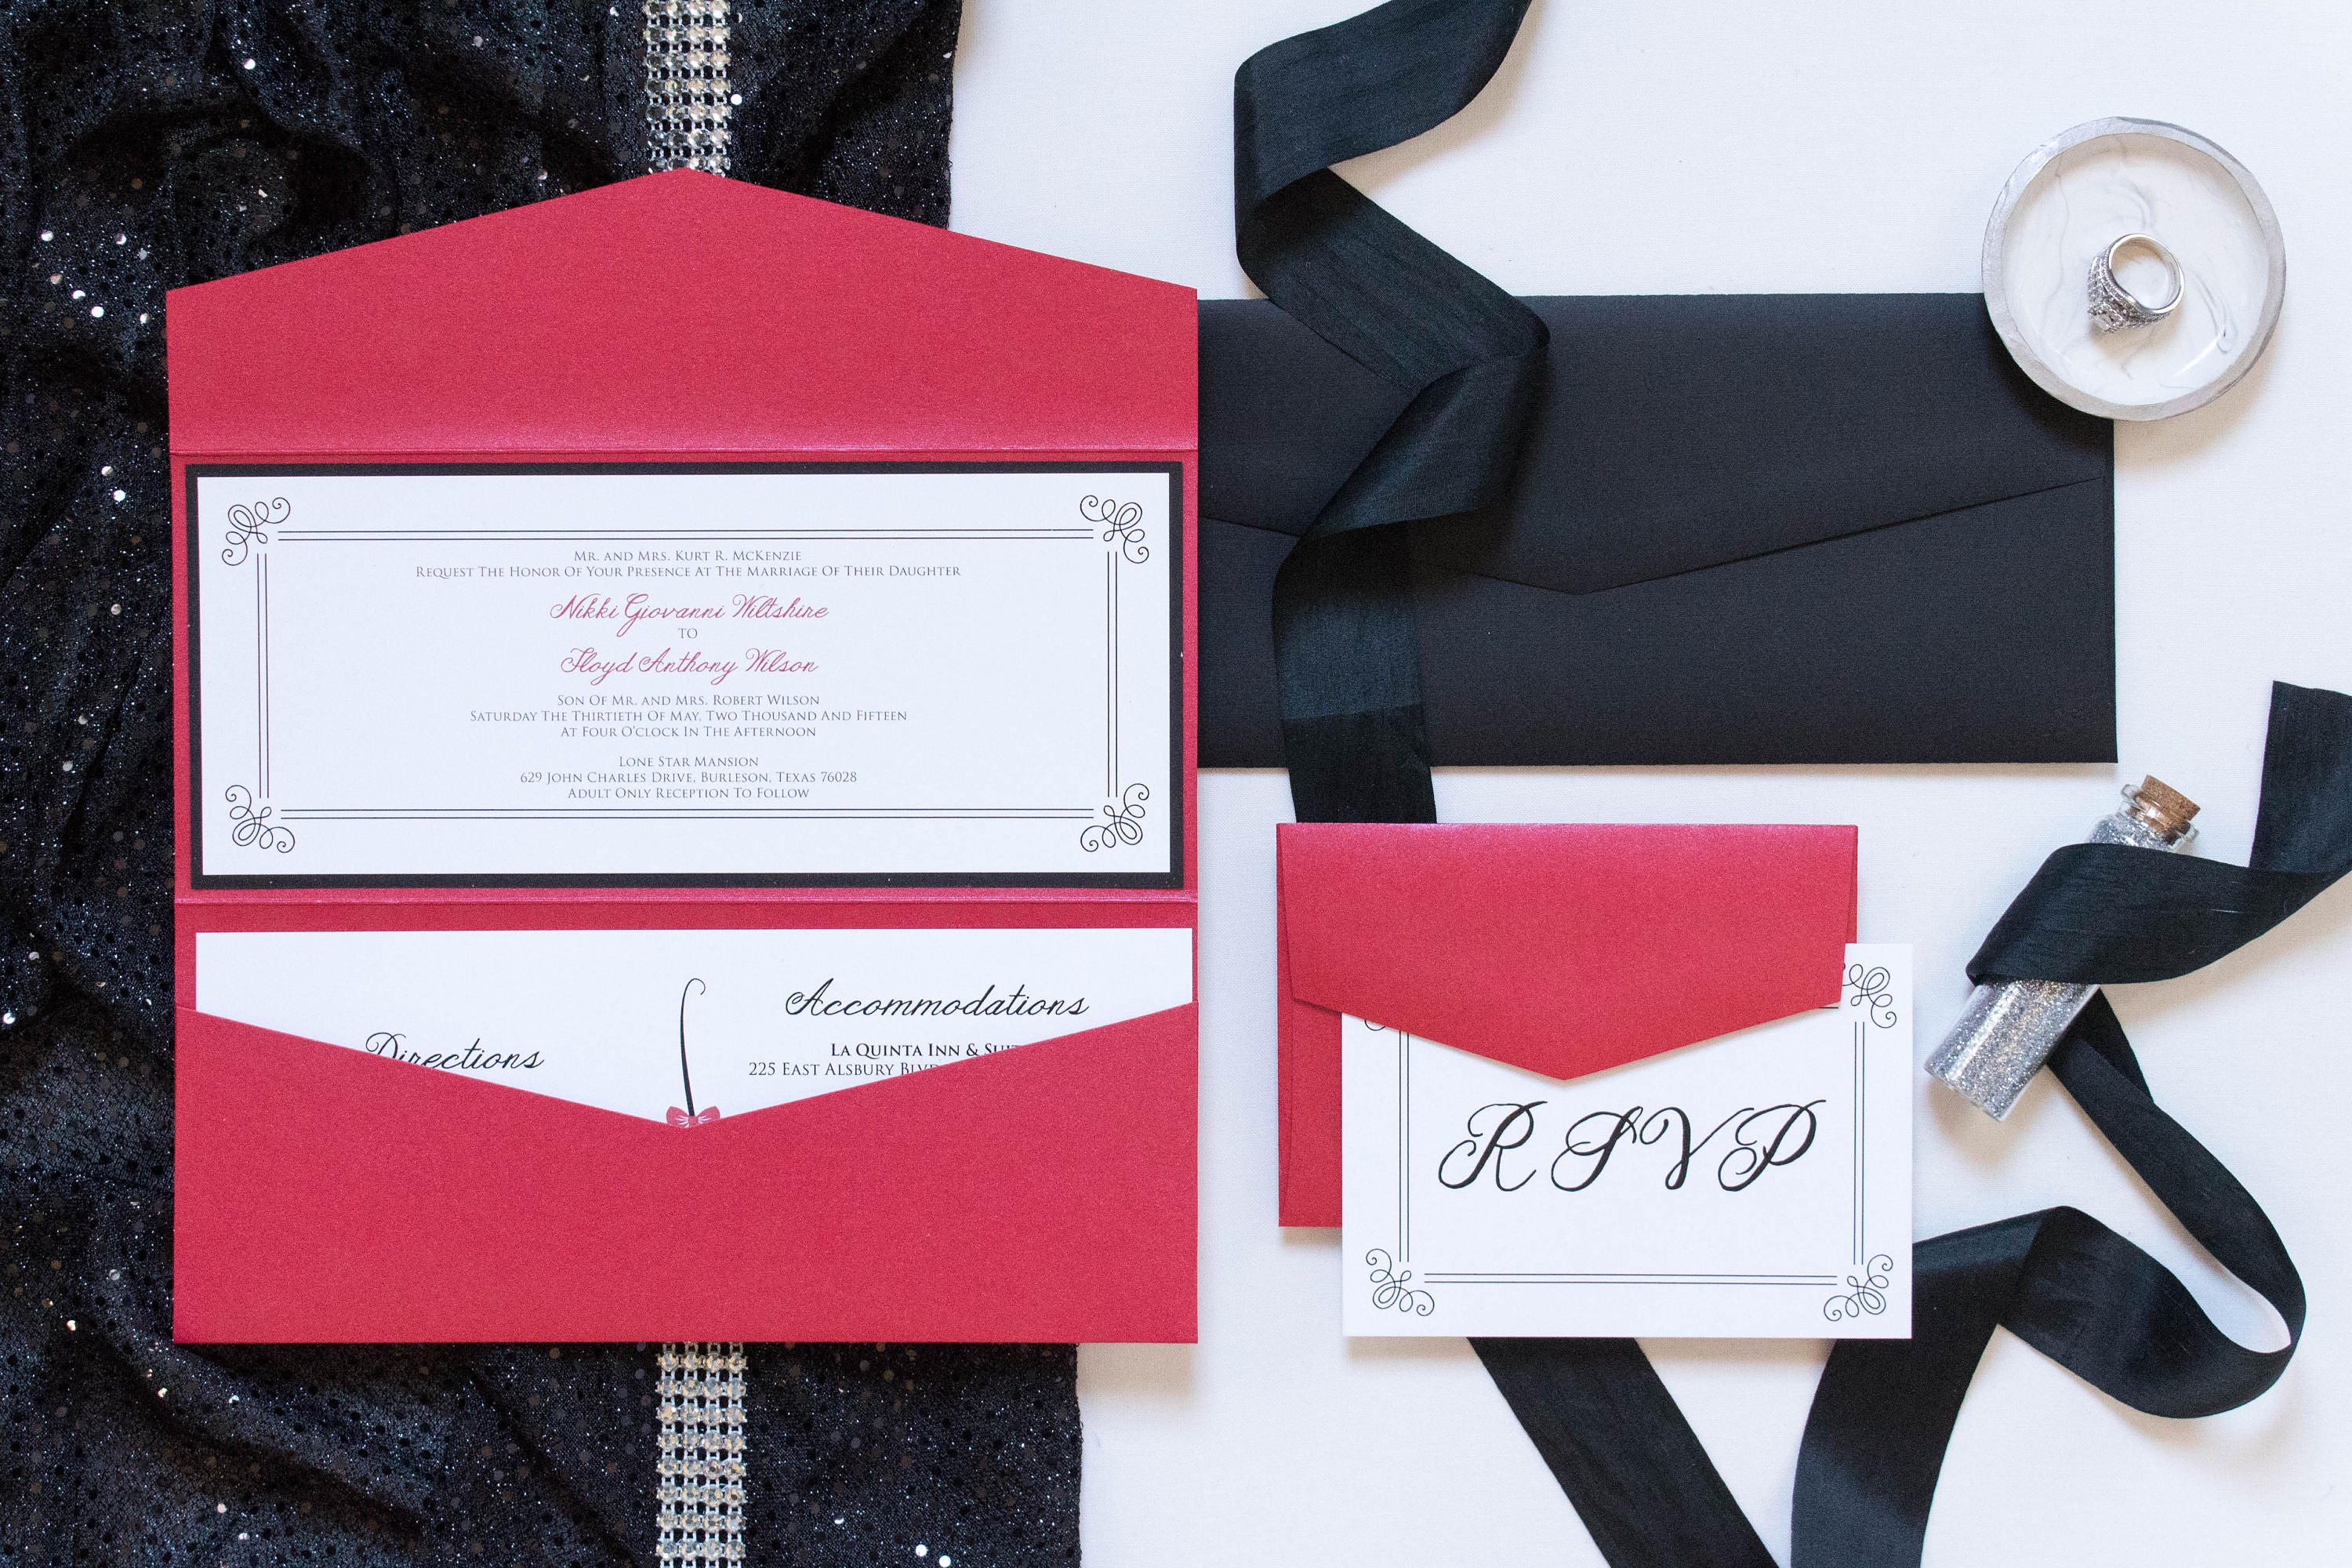 4x9 Odd Size Red and Black Pocket Wedding Invitation with